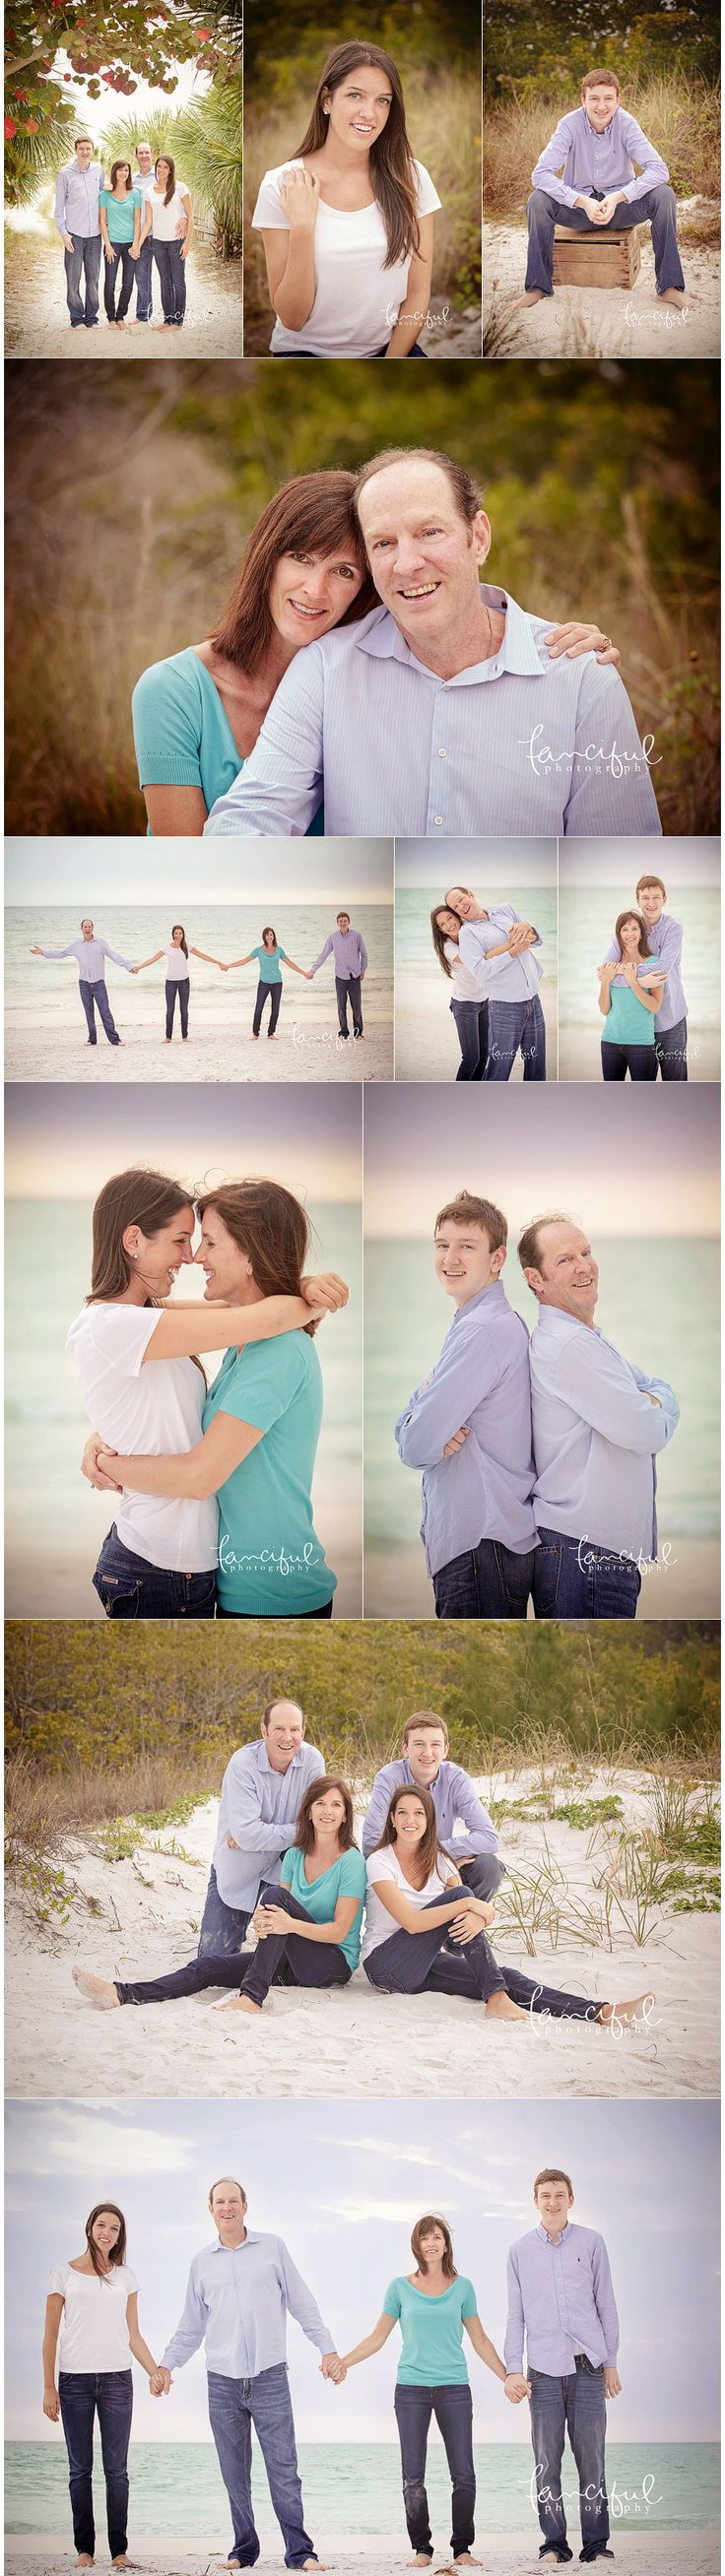 Siesta Key Family Beach Portrait Session  | http;//fancifulphotography.com